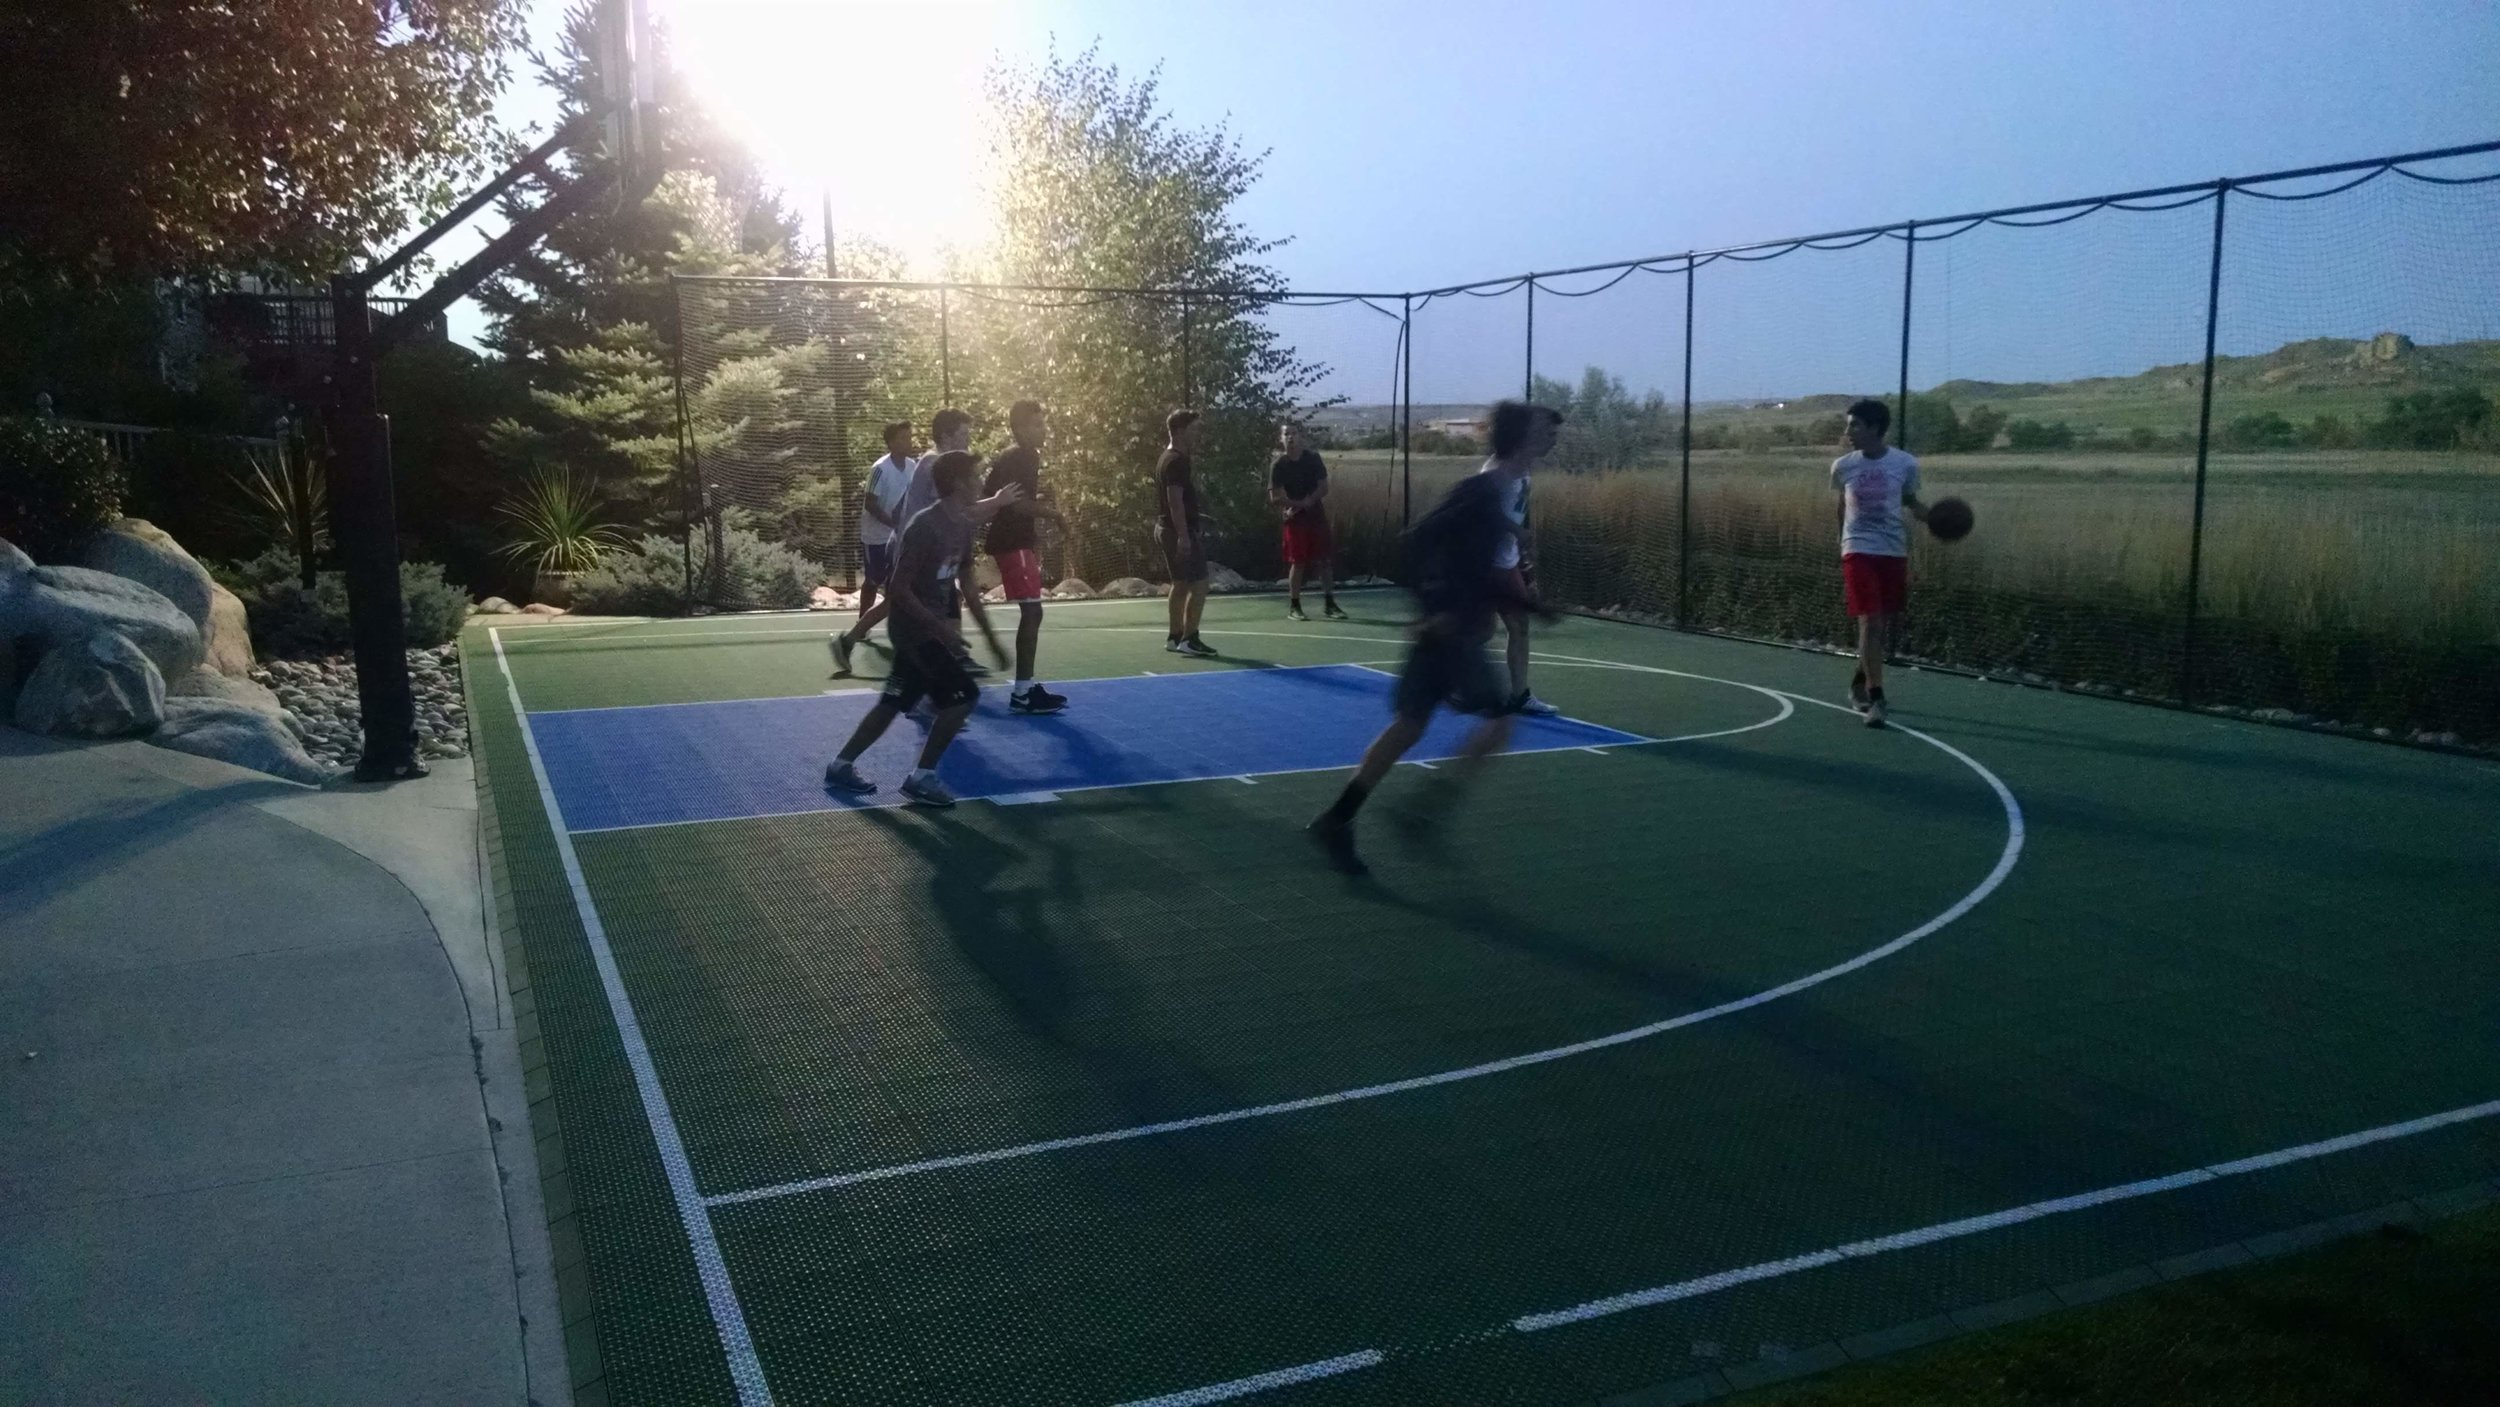 Sports - A Group 1 vs. Group 2 battle on the court.